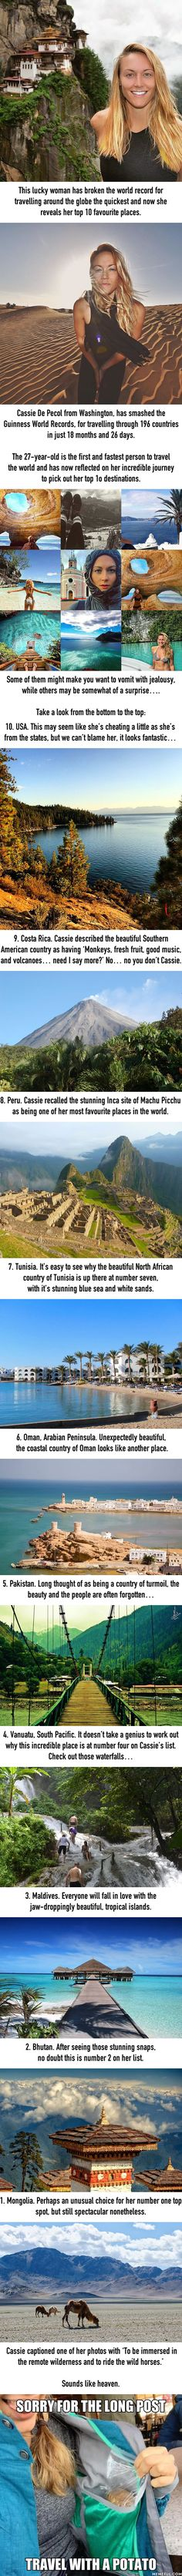 The First Woman To Visit Every Country Reveals Her Top 10 Favourite Places - 9GAG